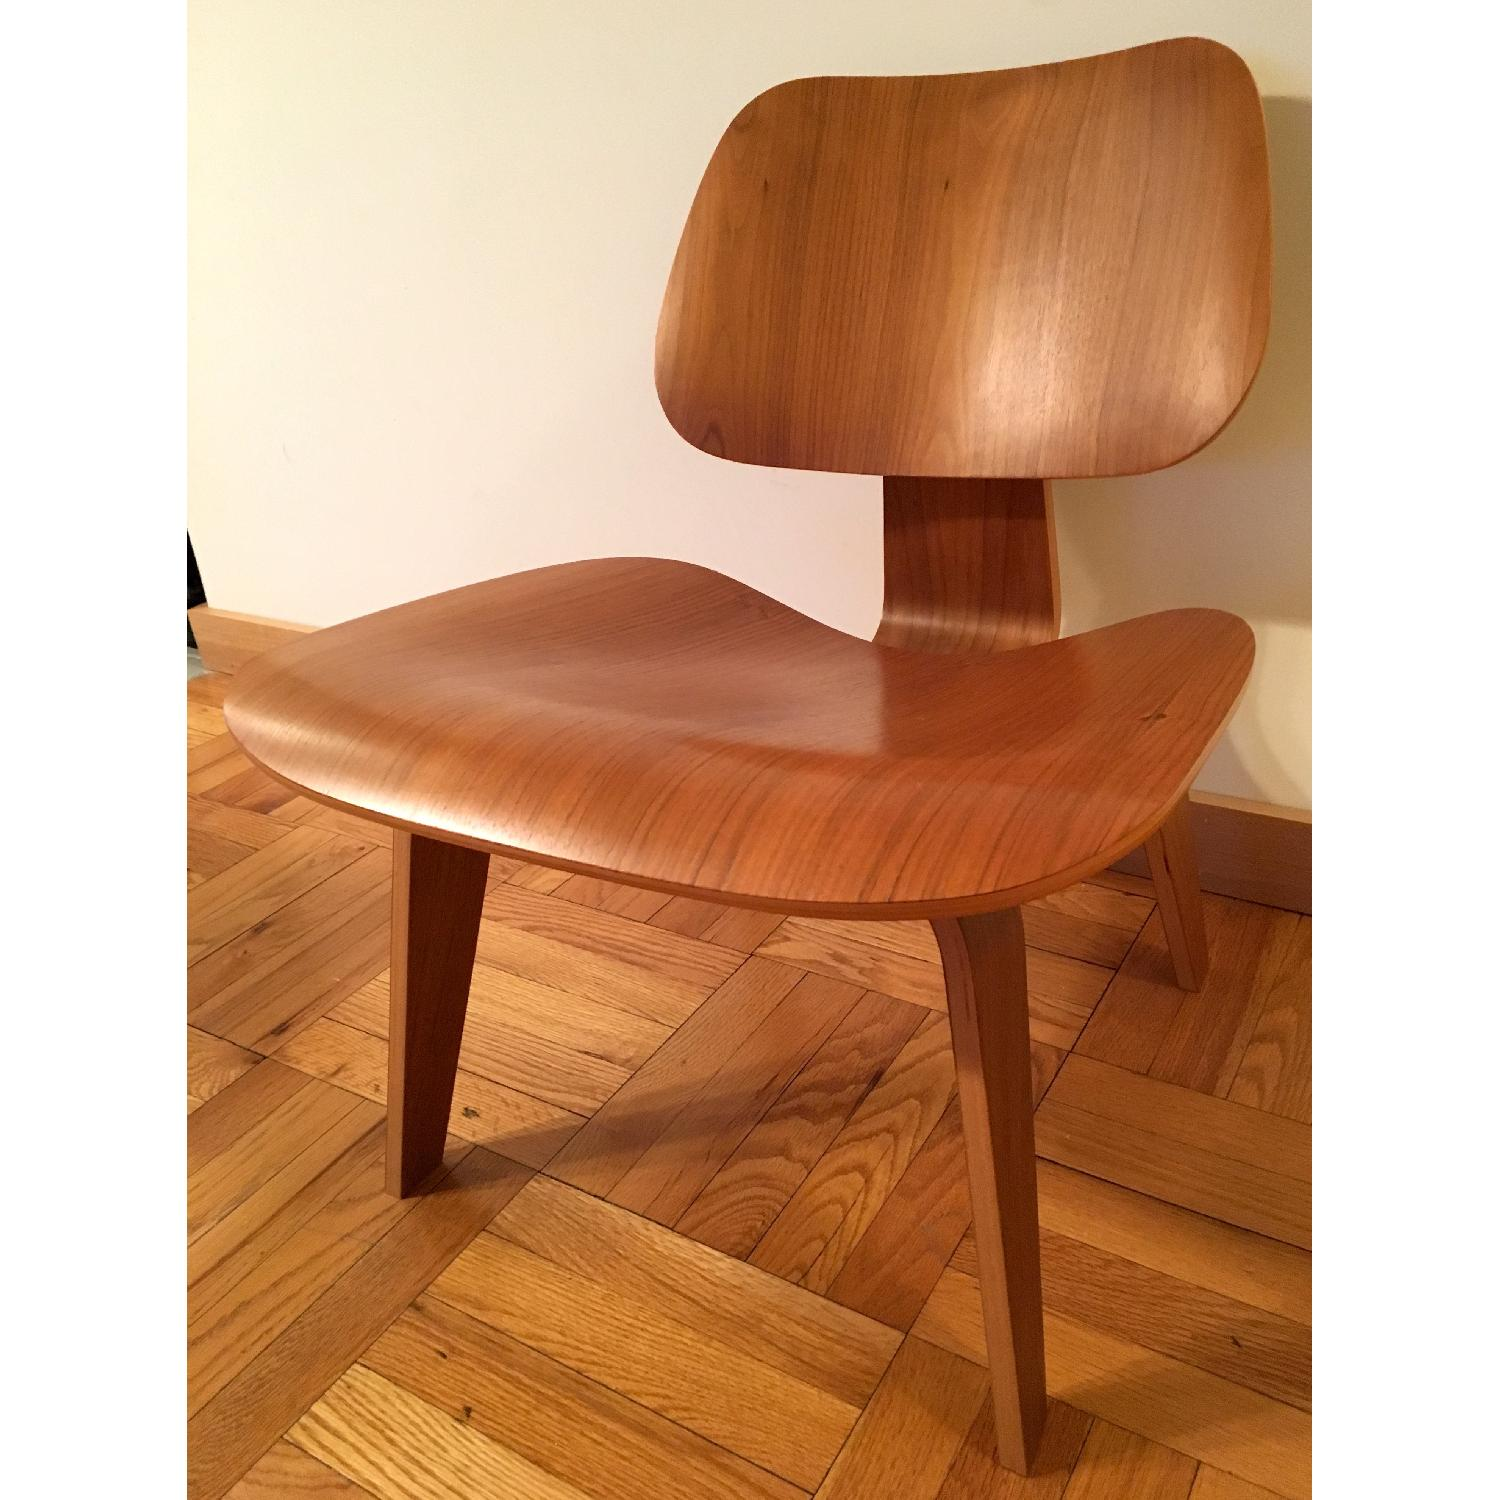 Eames Plywood Lounge Chair-2